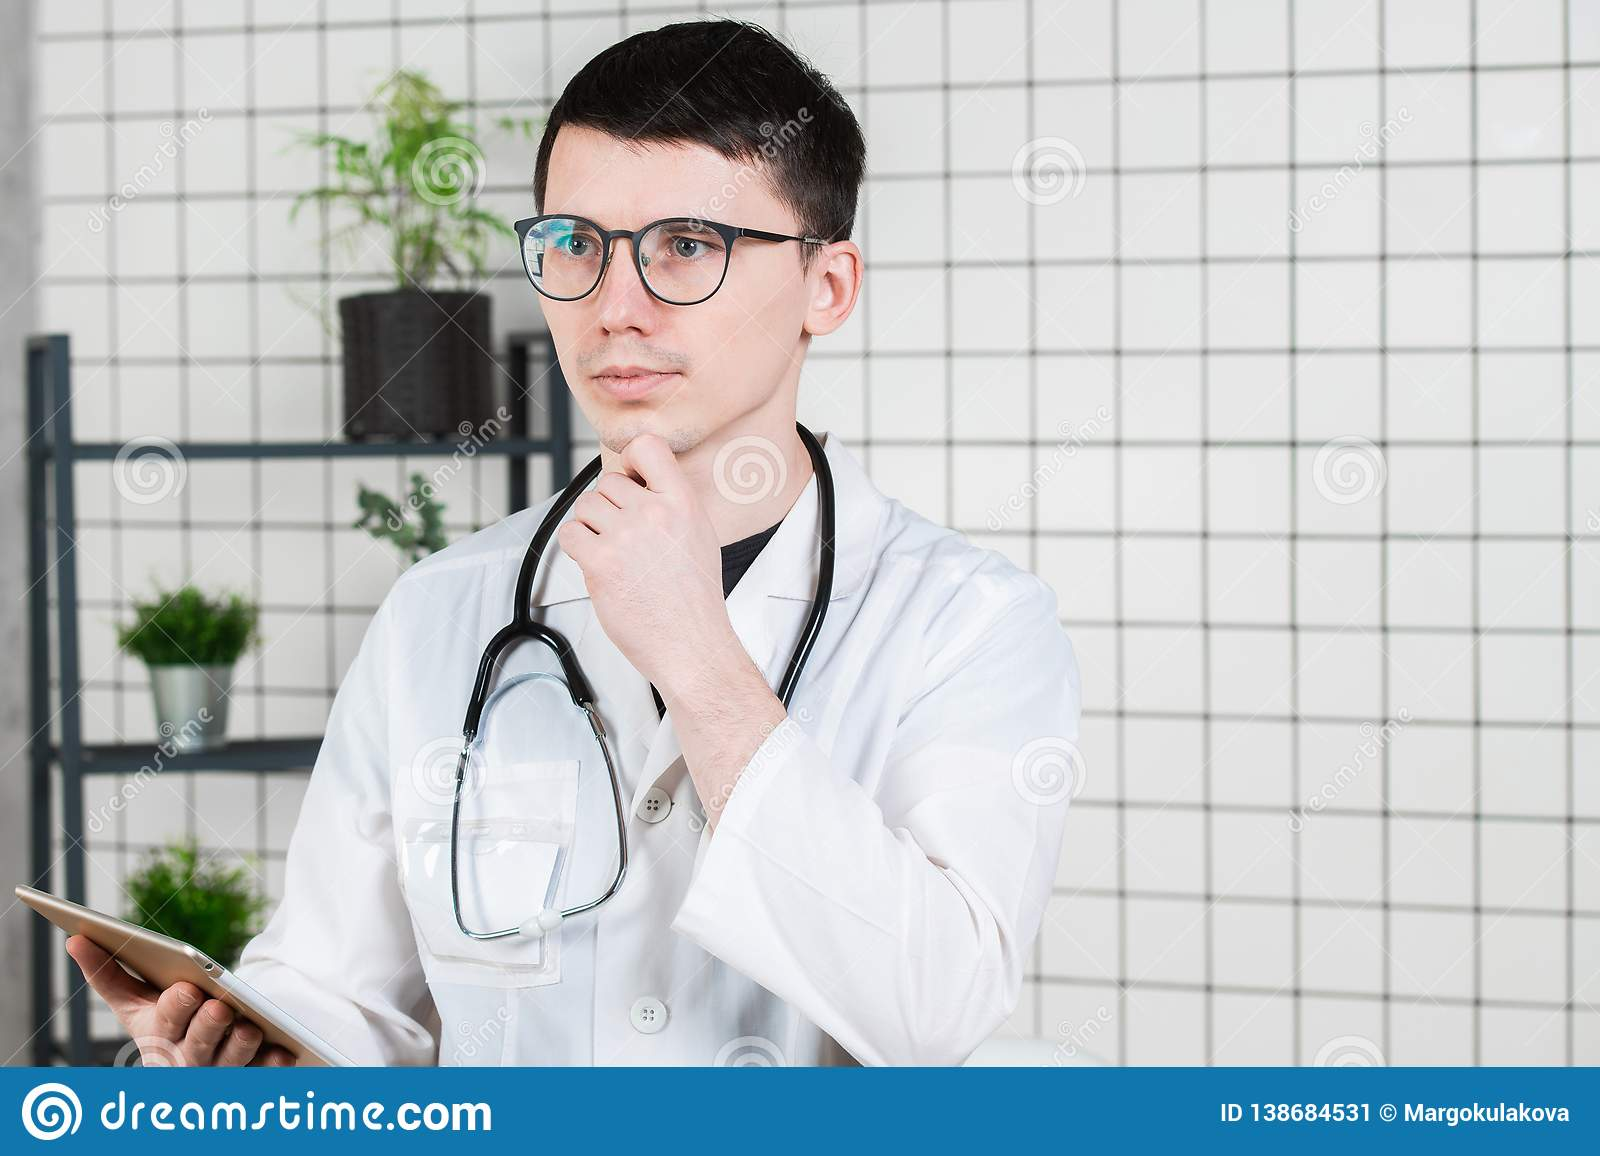 Pensive handsome young male doctor using tablet computer. Technologies in medicine concept